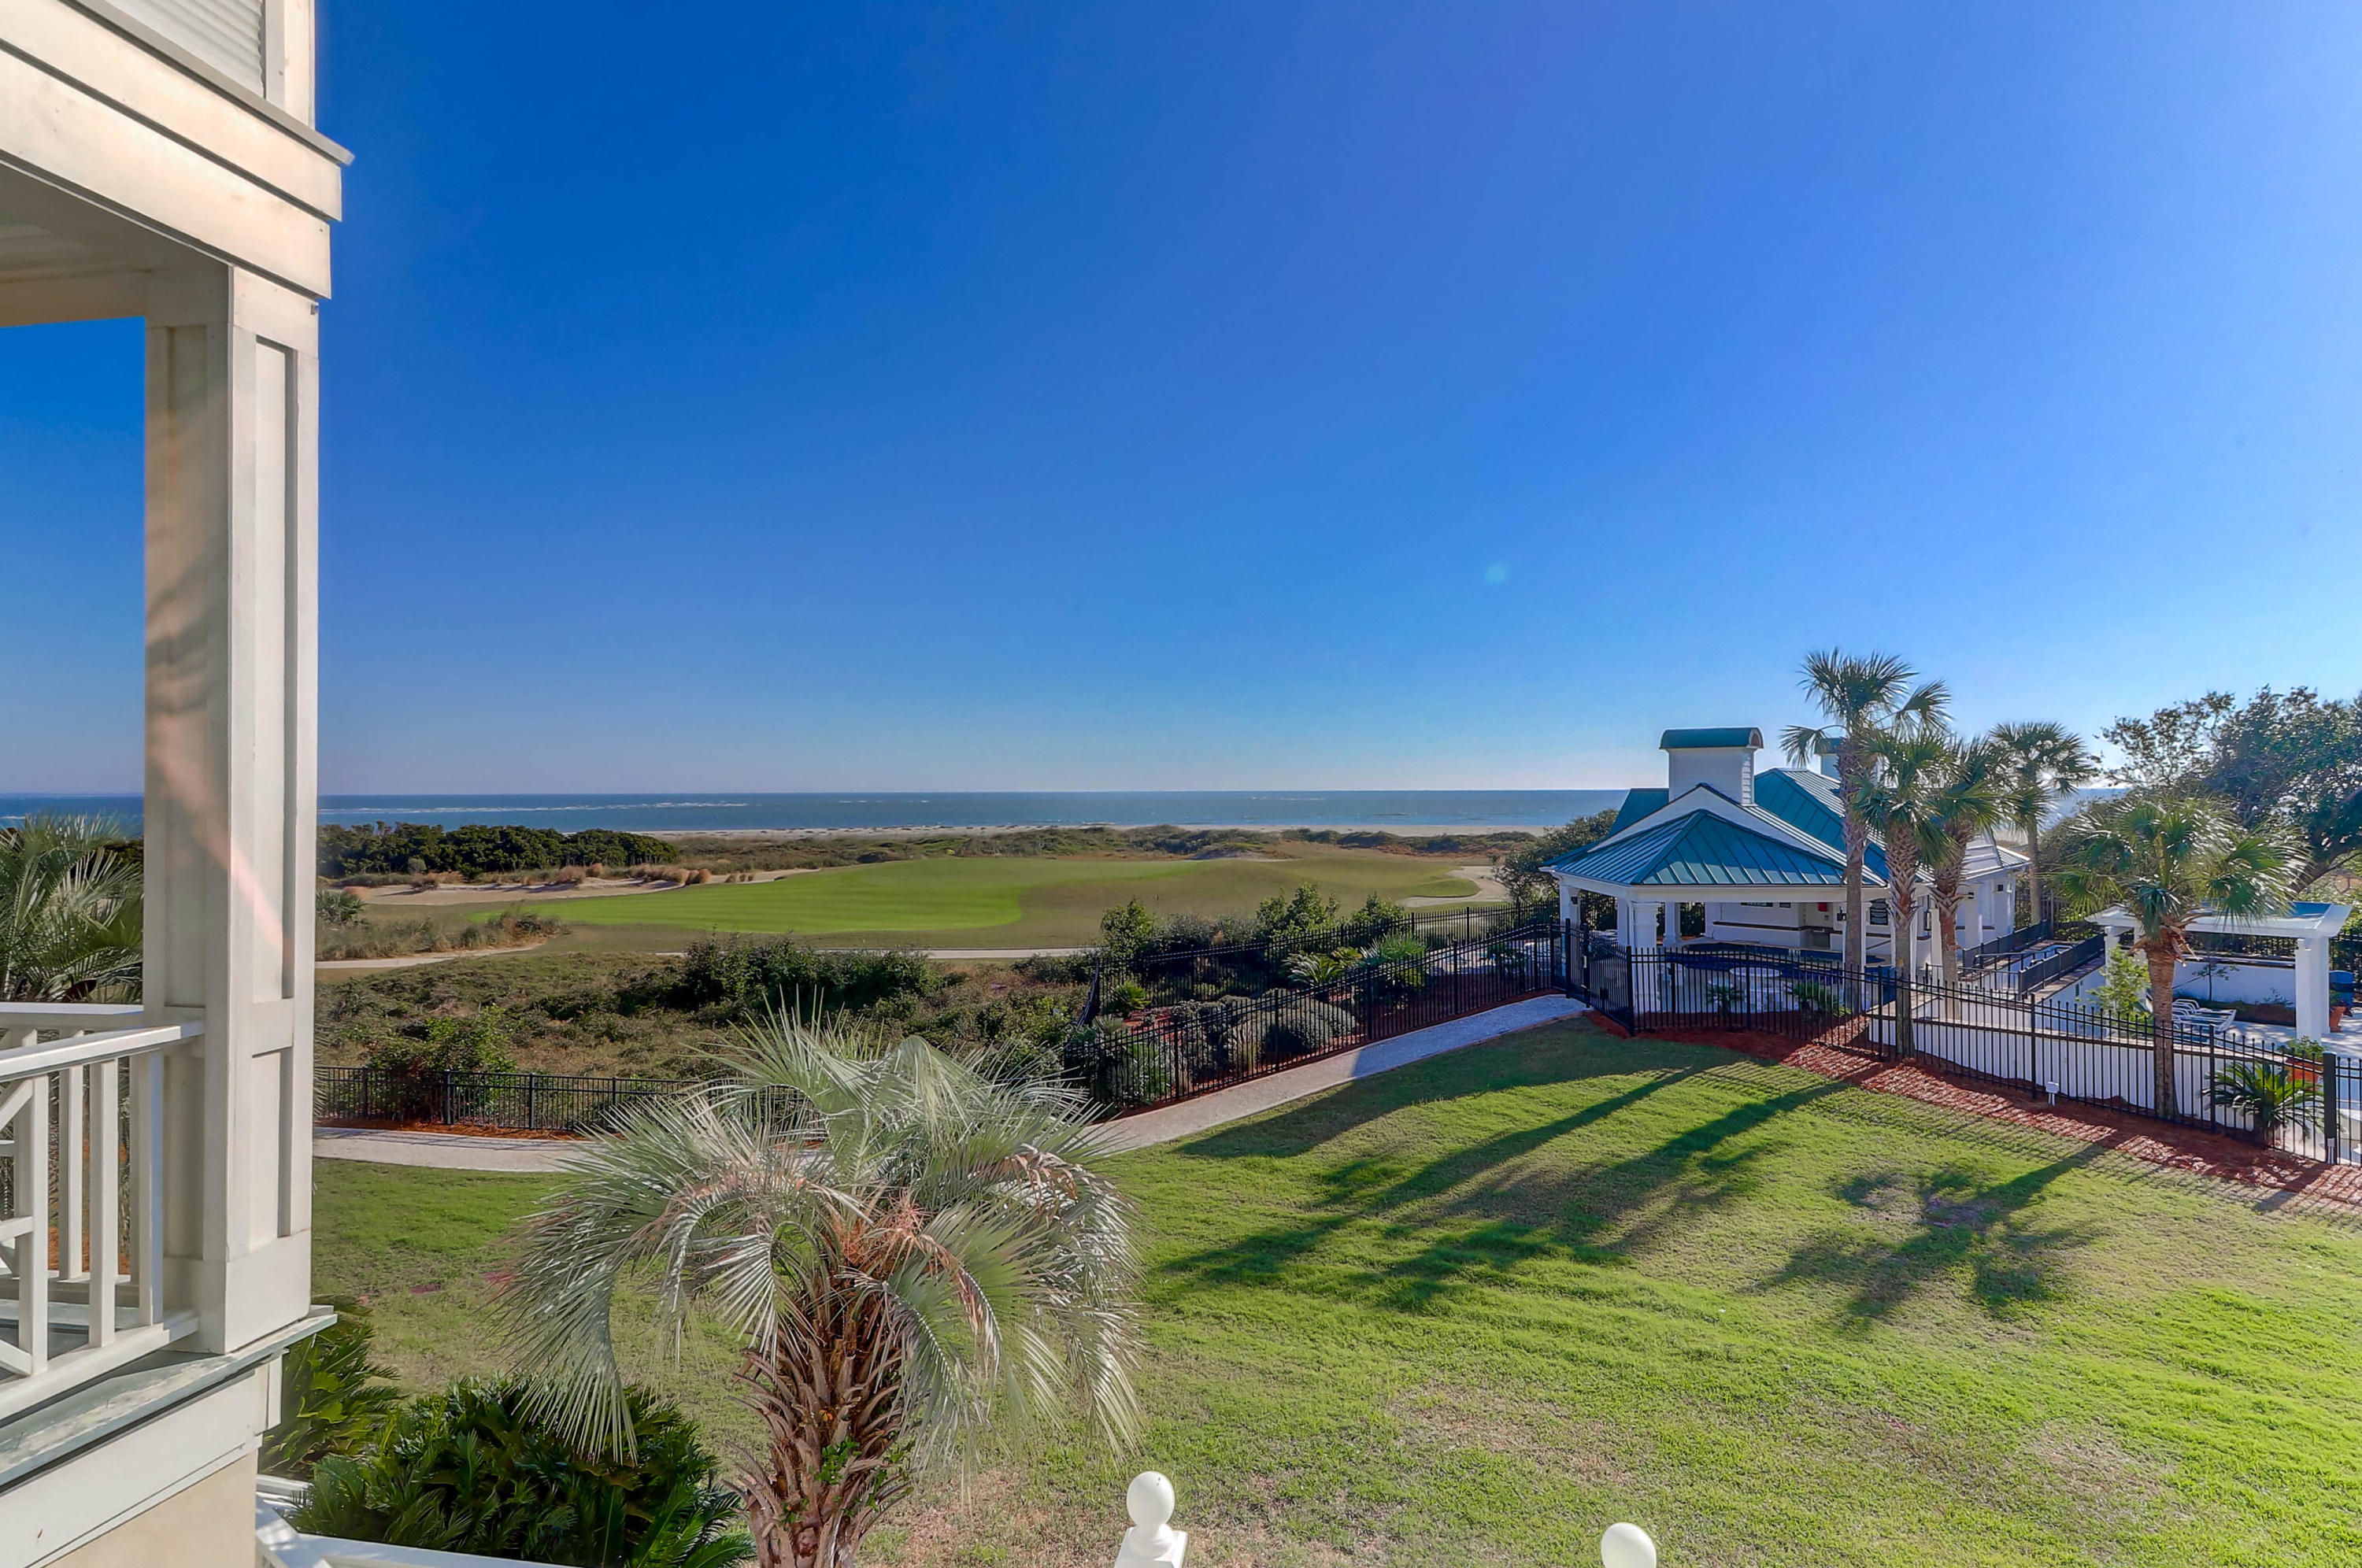 Wild Dunes Homes For Sale - 36 Ocean Point, Isle of Palms, SC - 20